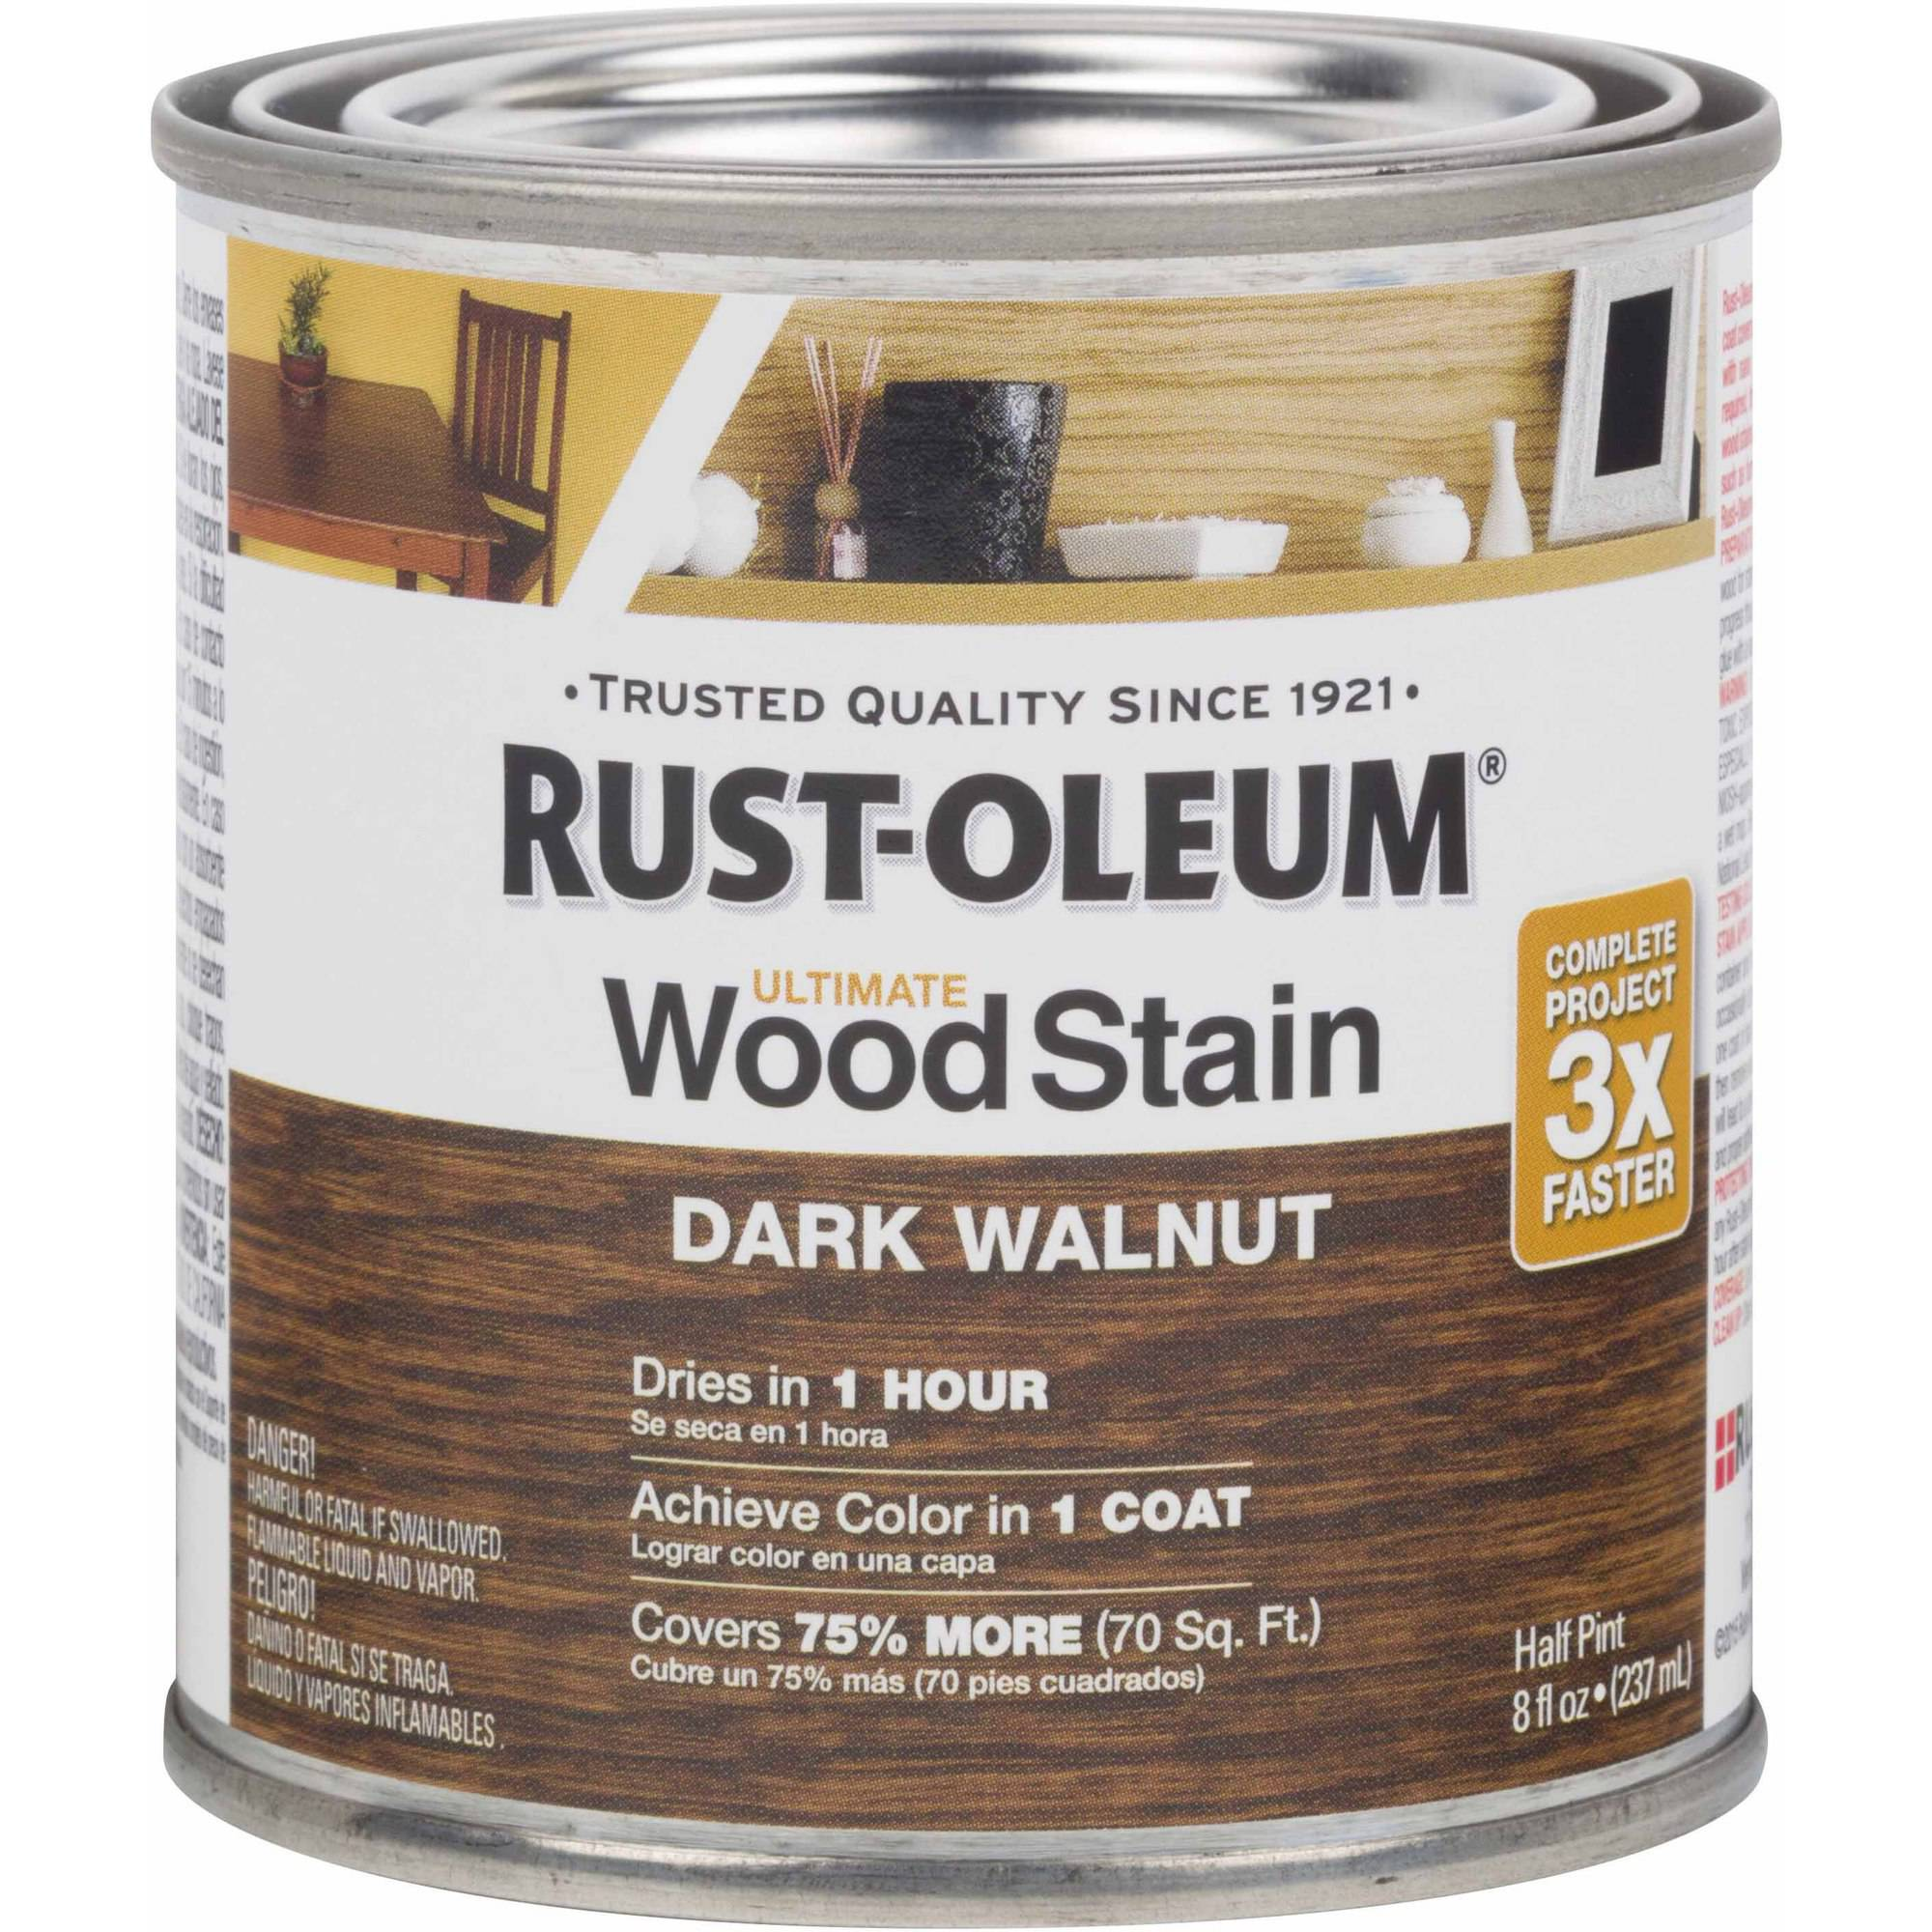 Rust-Oleum Ultimate Wood Stain Half-Pint, Dark Walnut